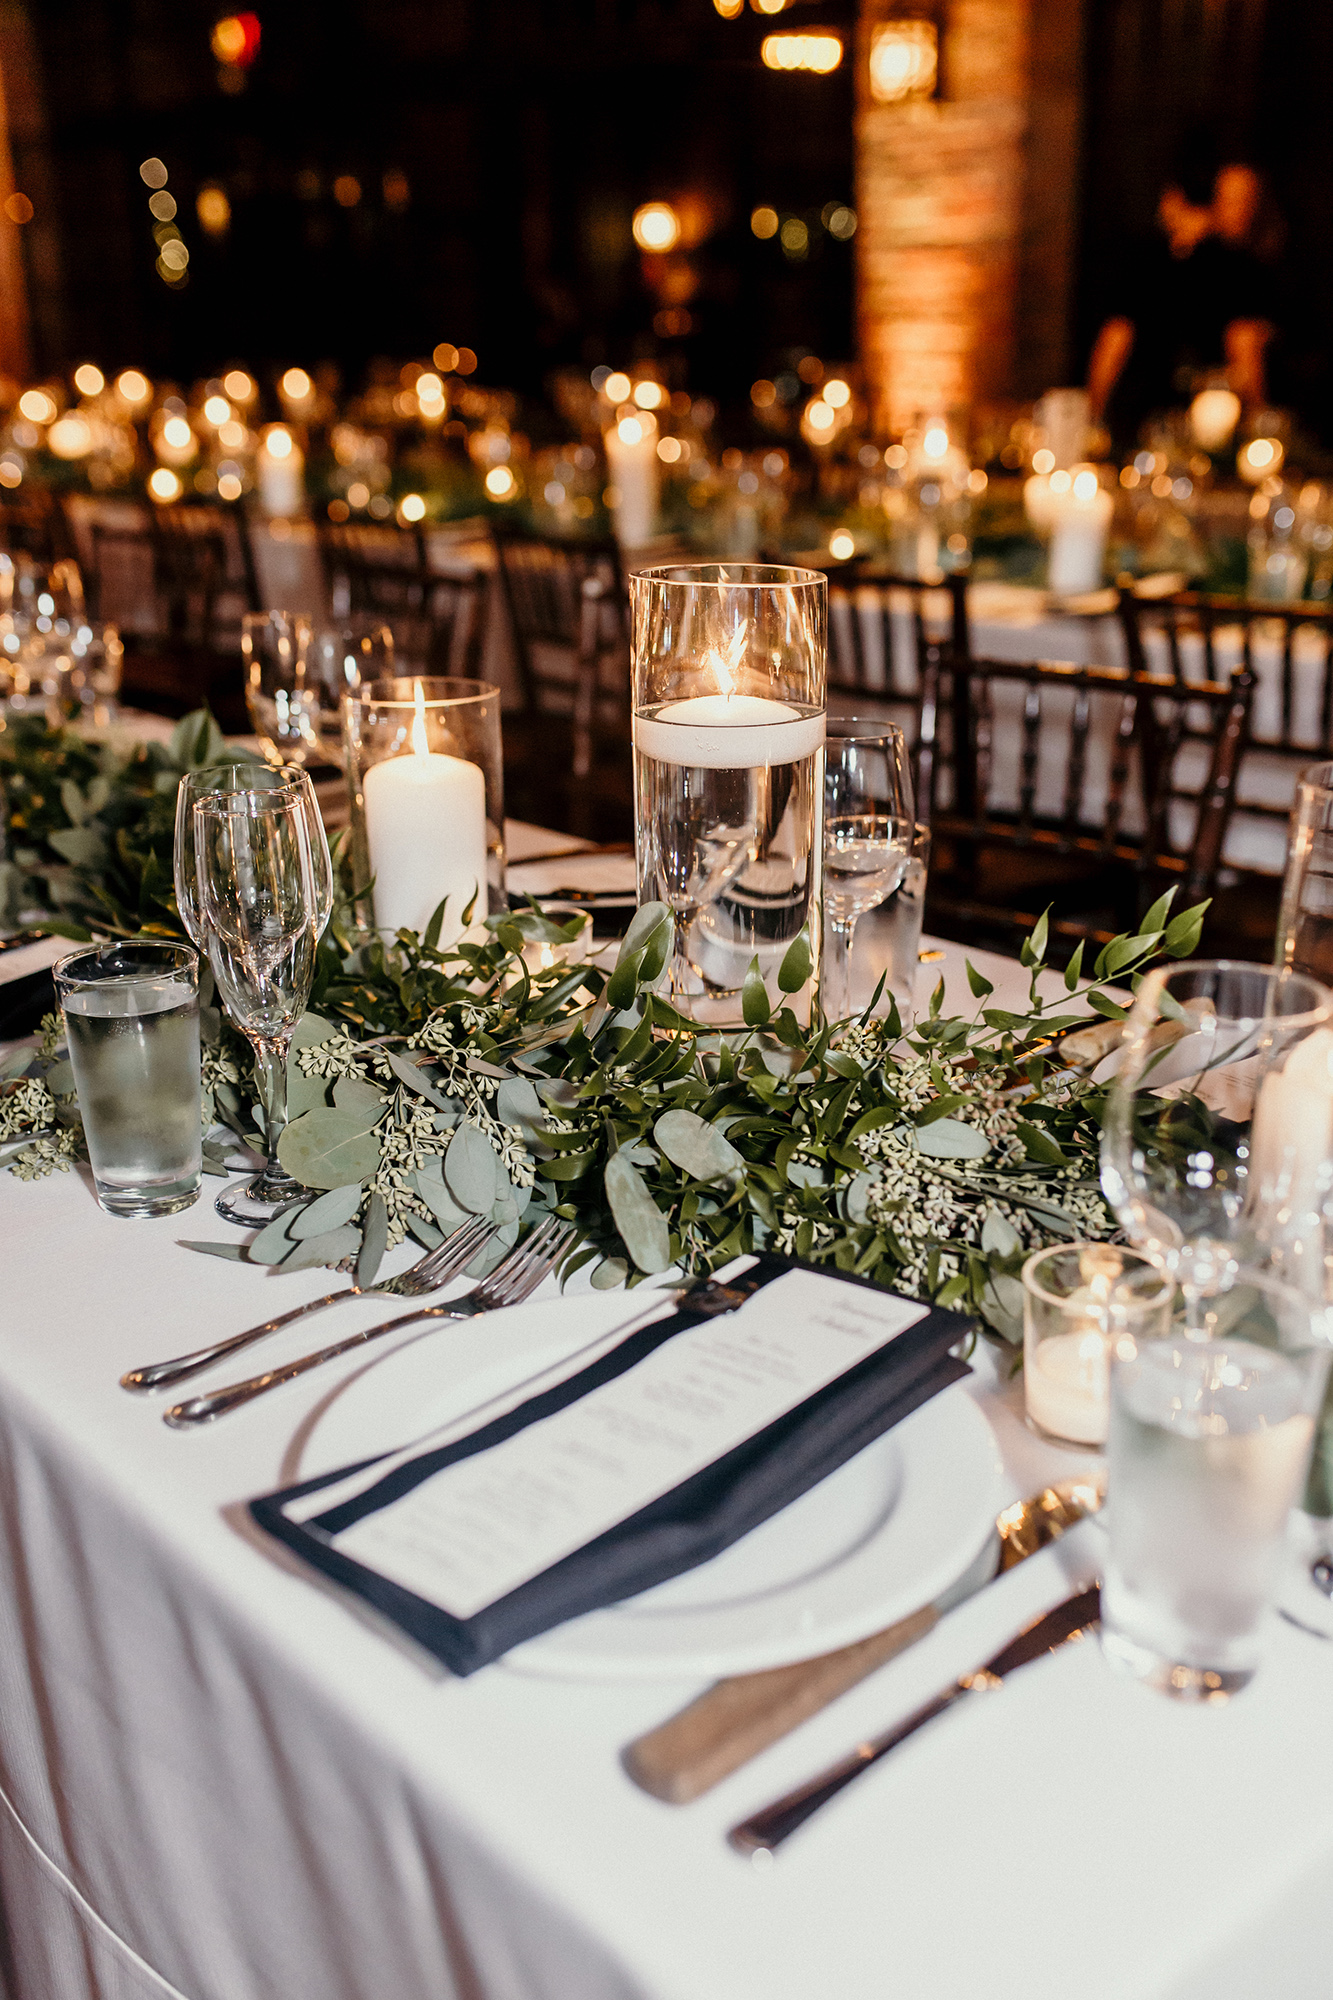 Diy Centerpiece Ideas With Candles By Bride Blossom Nyc S Only Luxury Wedding Florist Wedding Ideas Tips And Trends For The Modern Sophisticated Bride